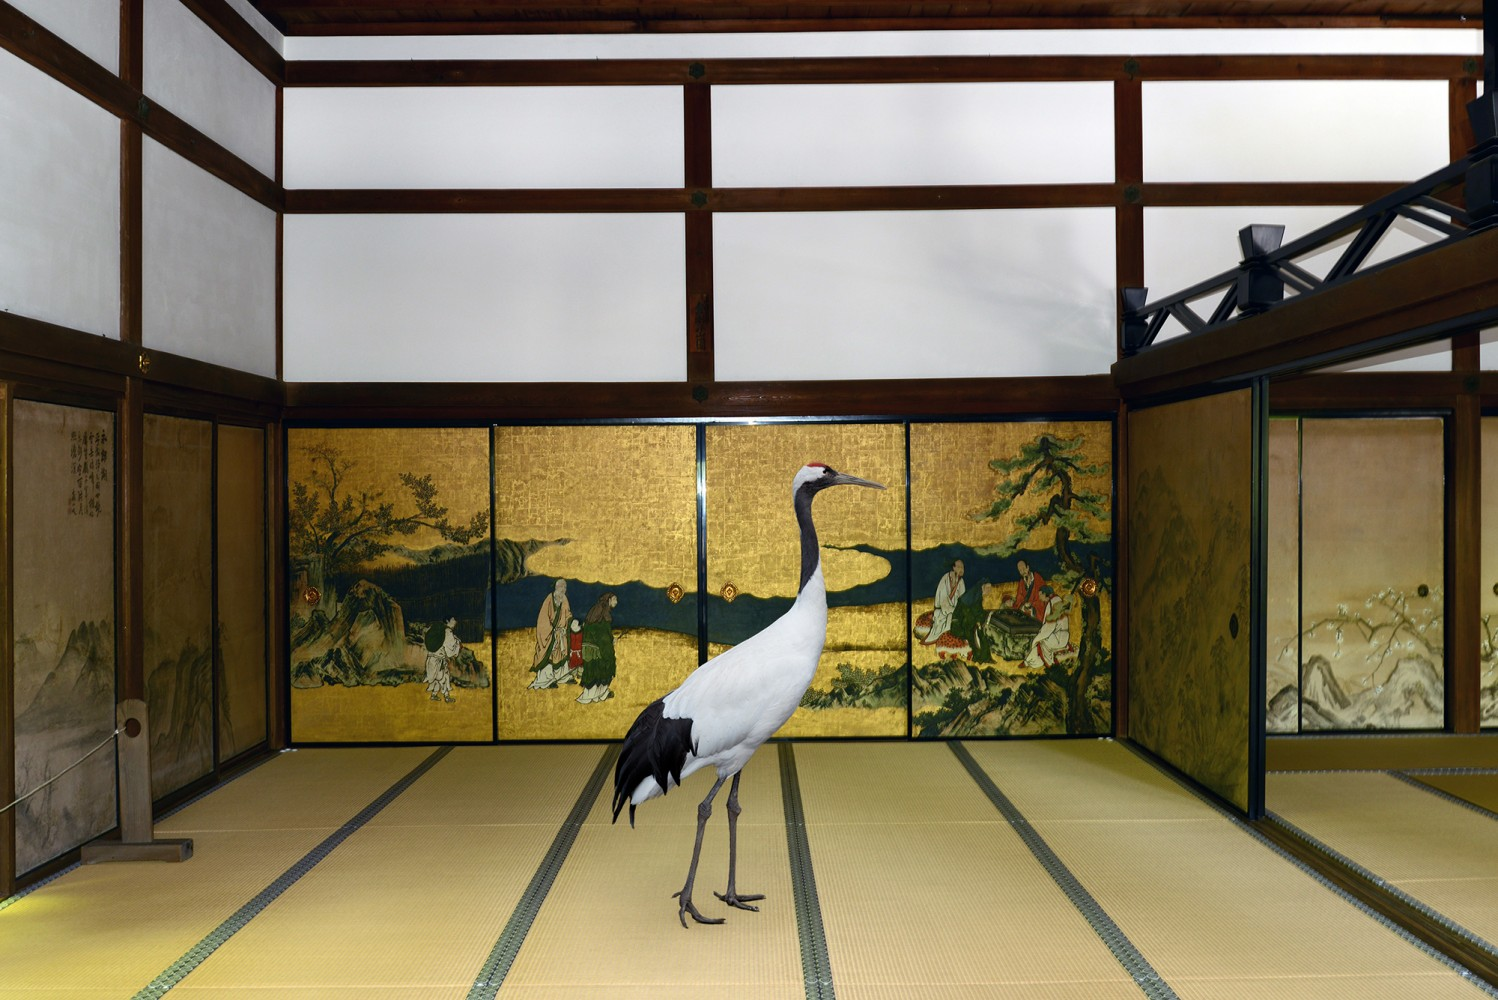 https://i2.wp.com/karenknorr.com/wp-content/uploads/2015/02/3.Sarus-in-Temple-1498x1000.jpg